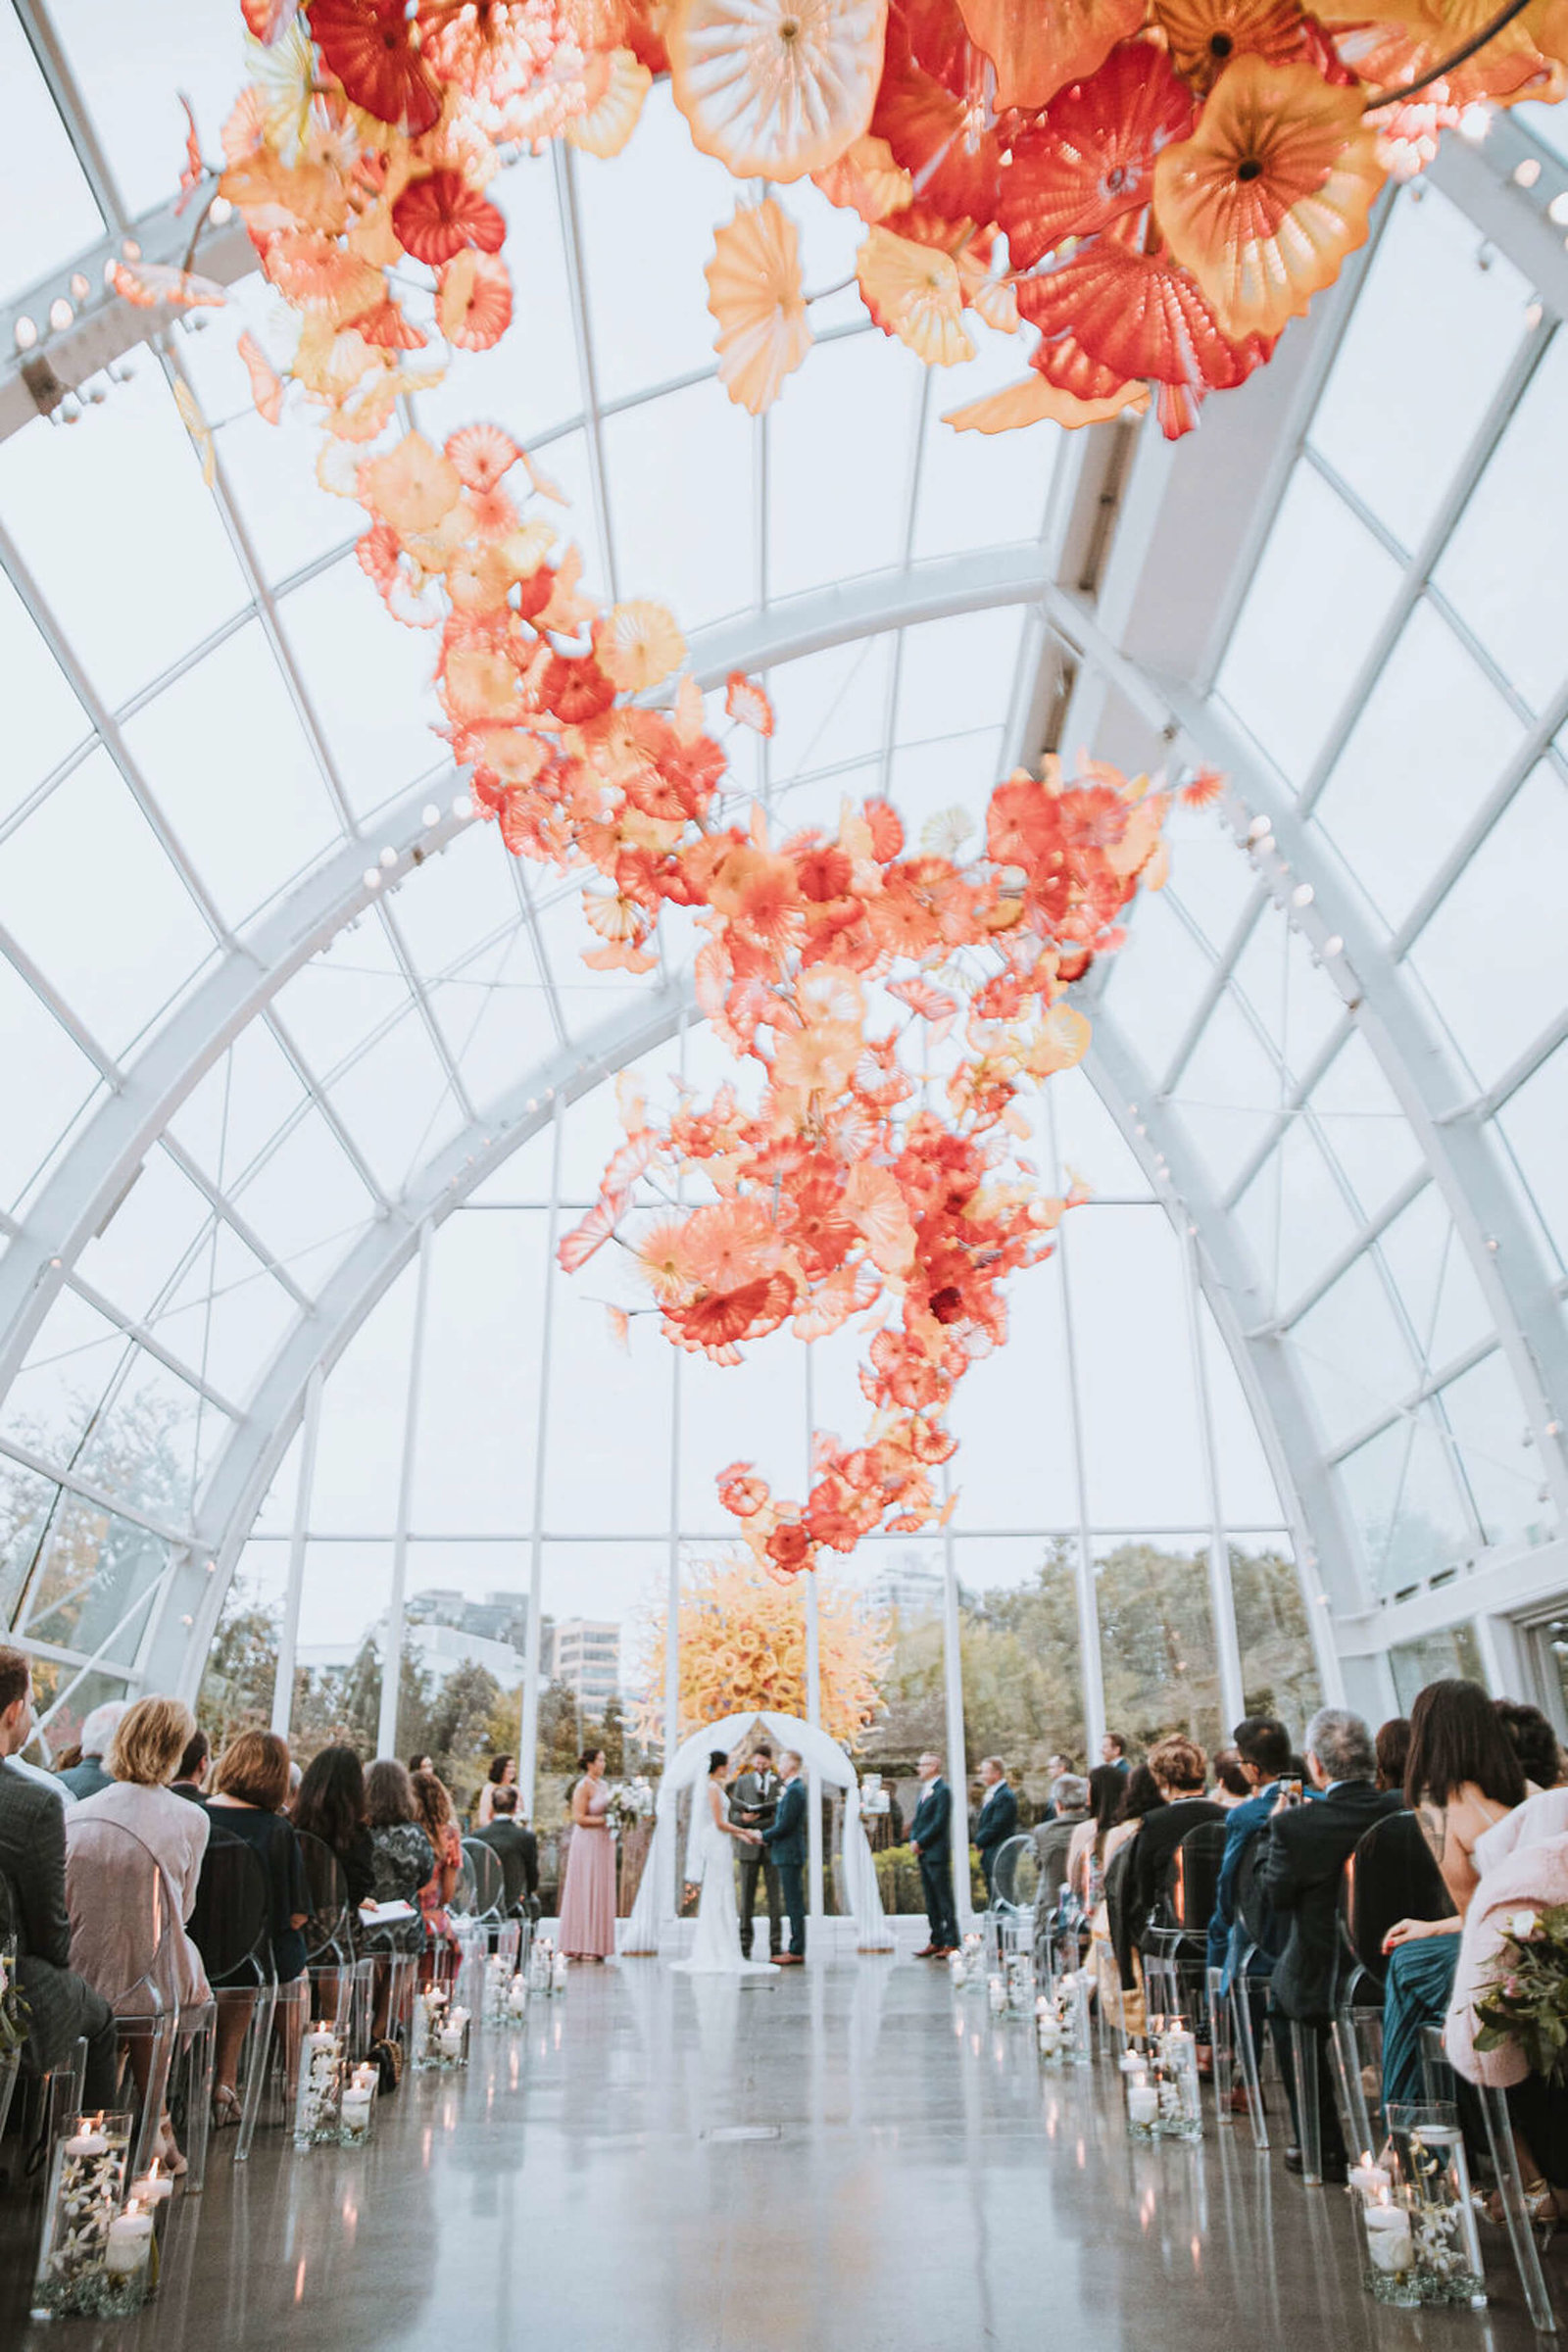 chihuly-garden-and-glass-wedding-sharel-eric-by-Adina-Preston-Photography-2019-349